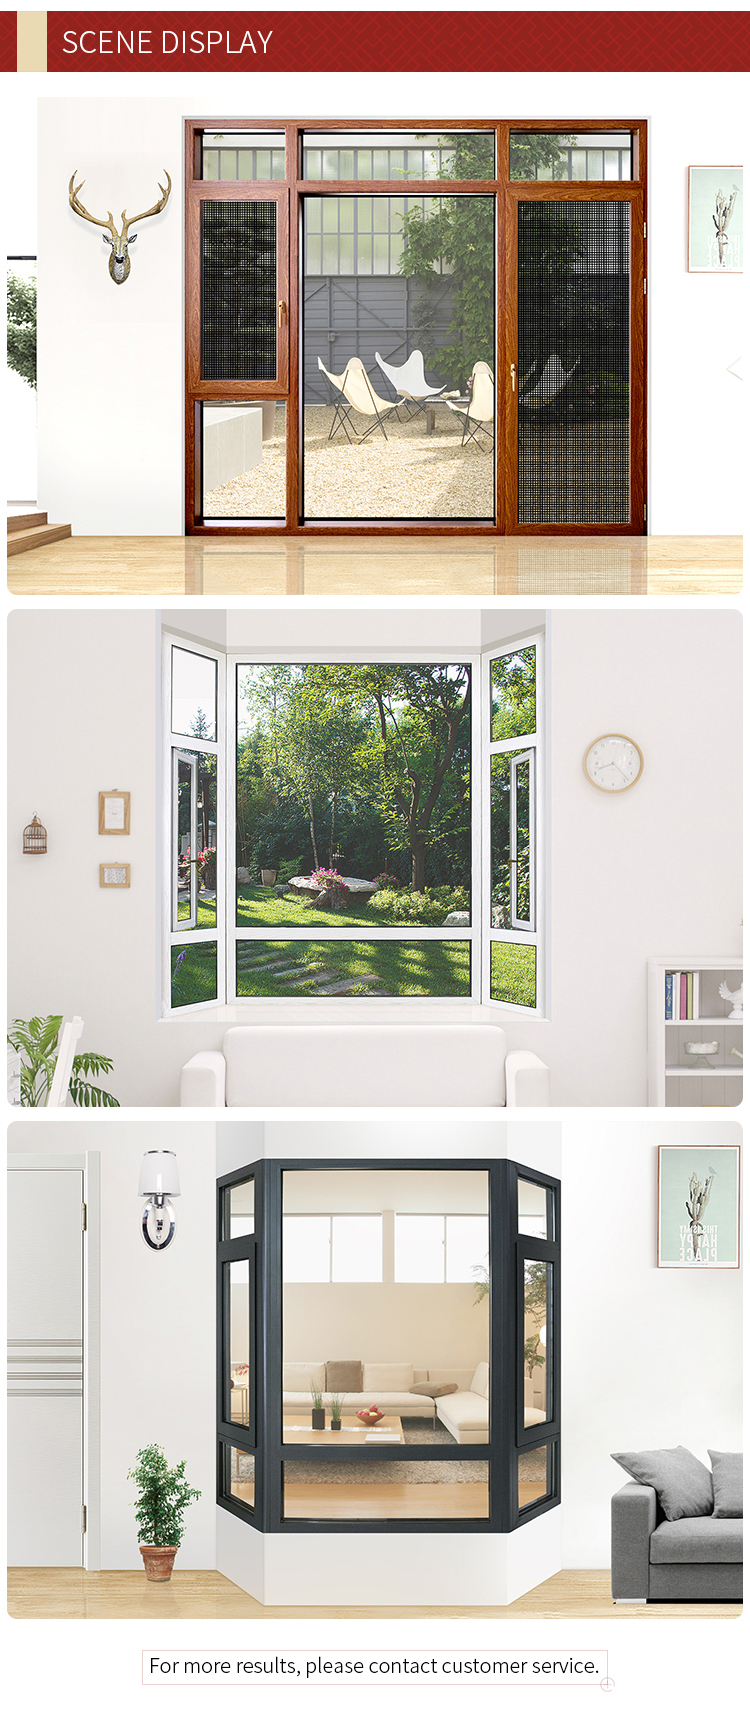 design aluminum frame structure glass casement windows